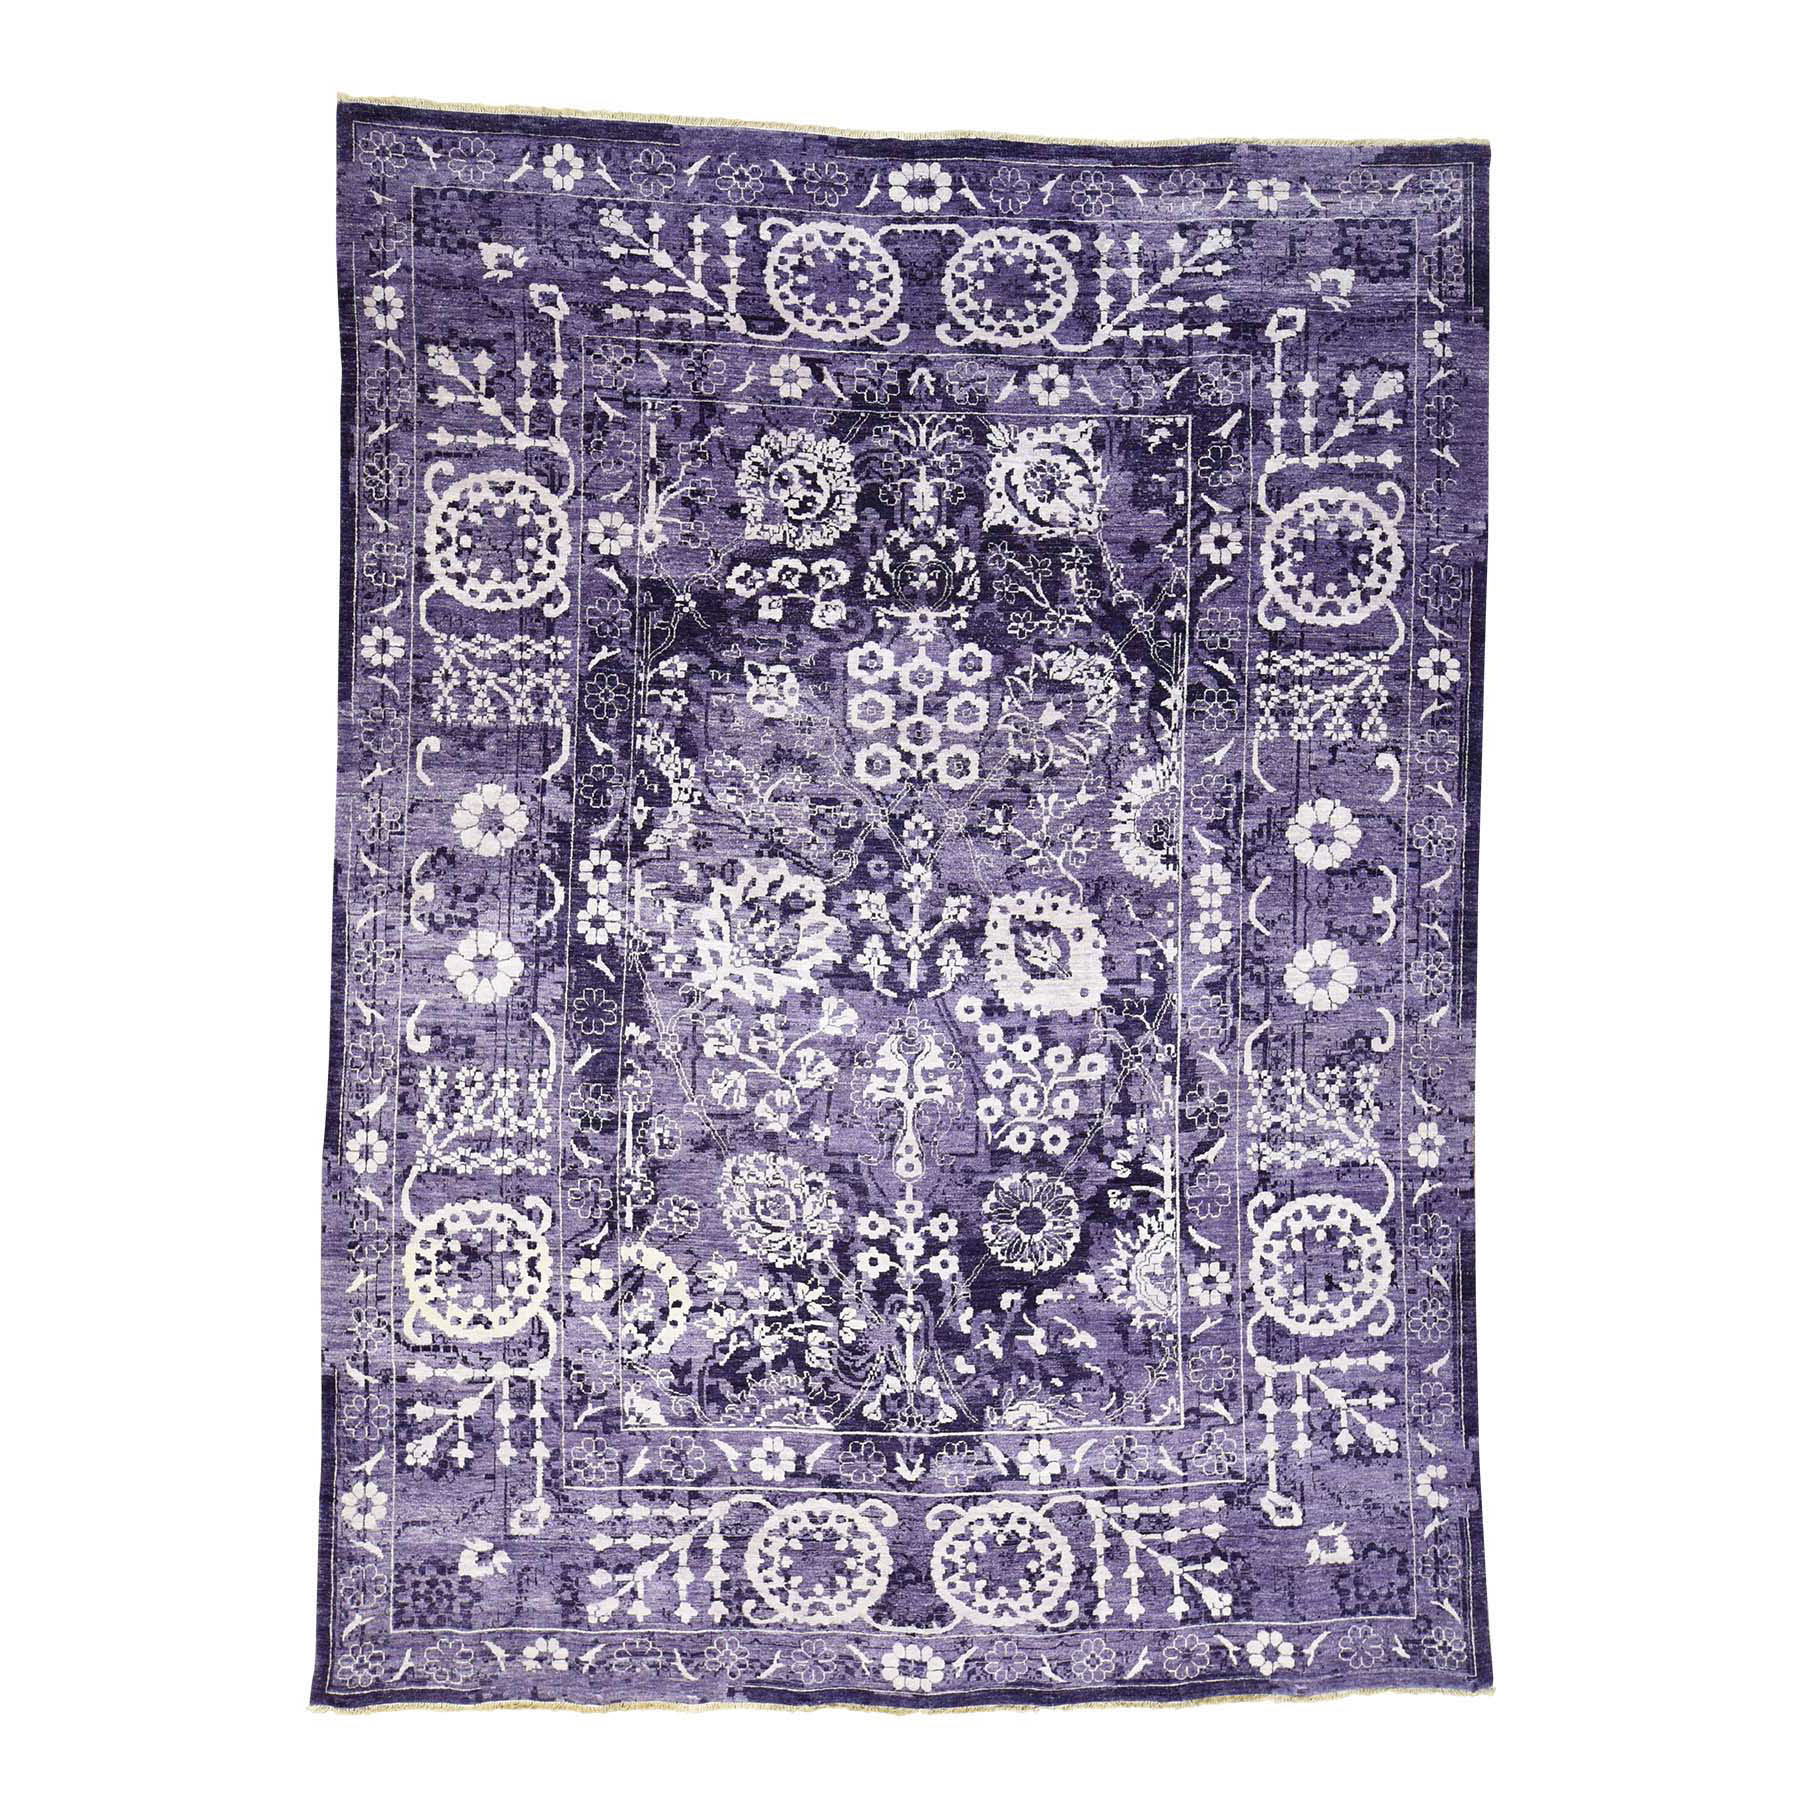 9'x12' Purple Wool And Silk Hand Woven Tone on Tone Tabriz Rug